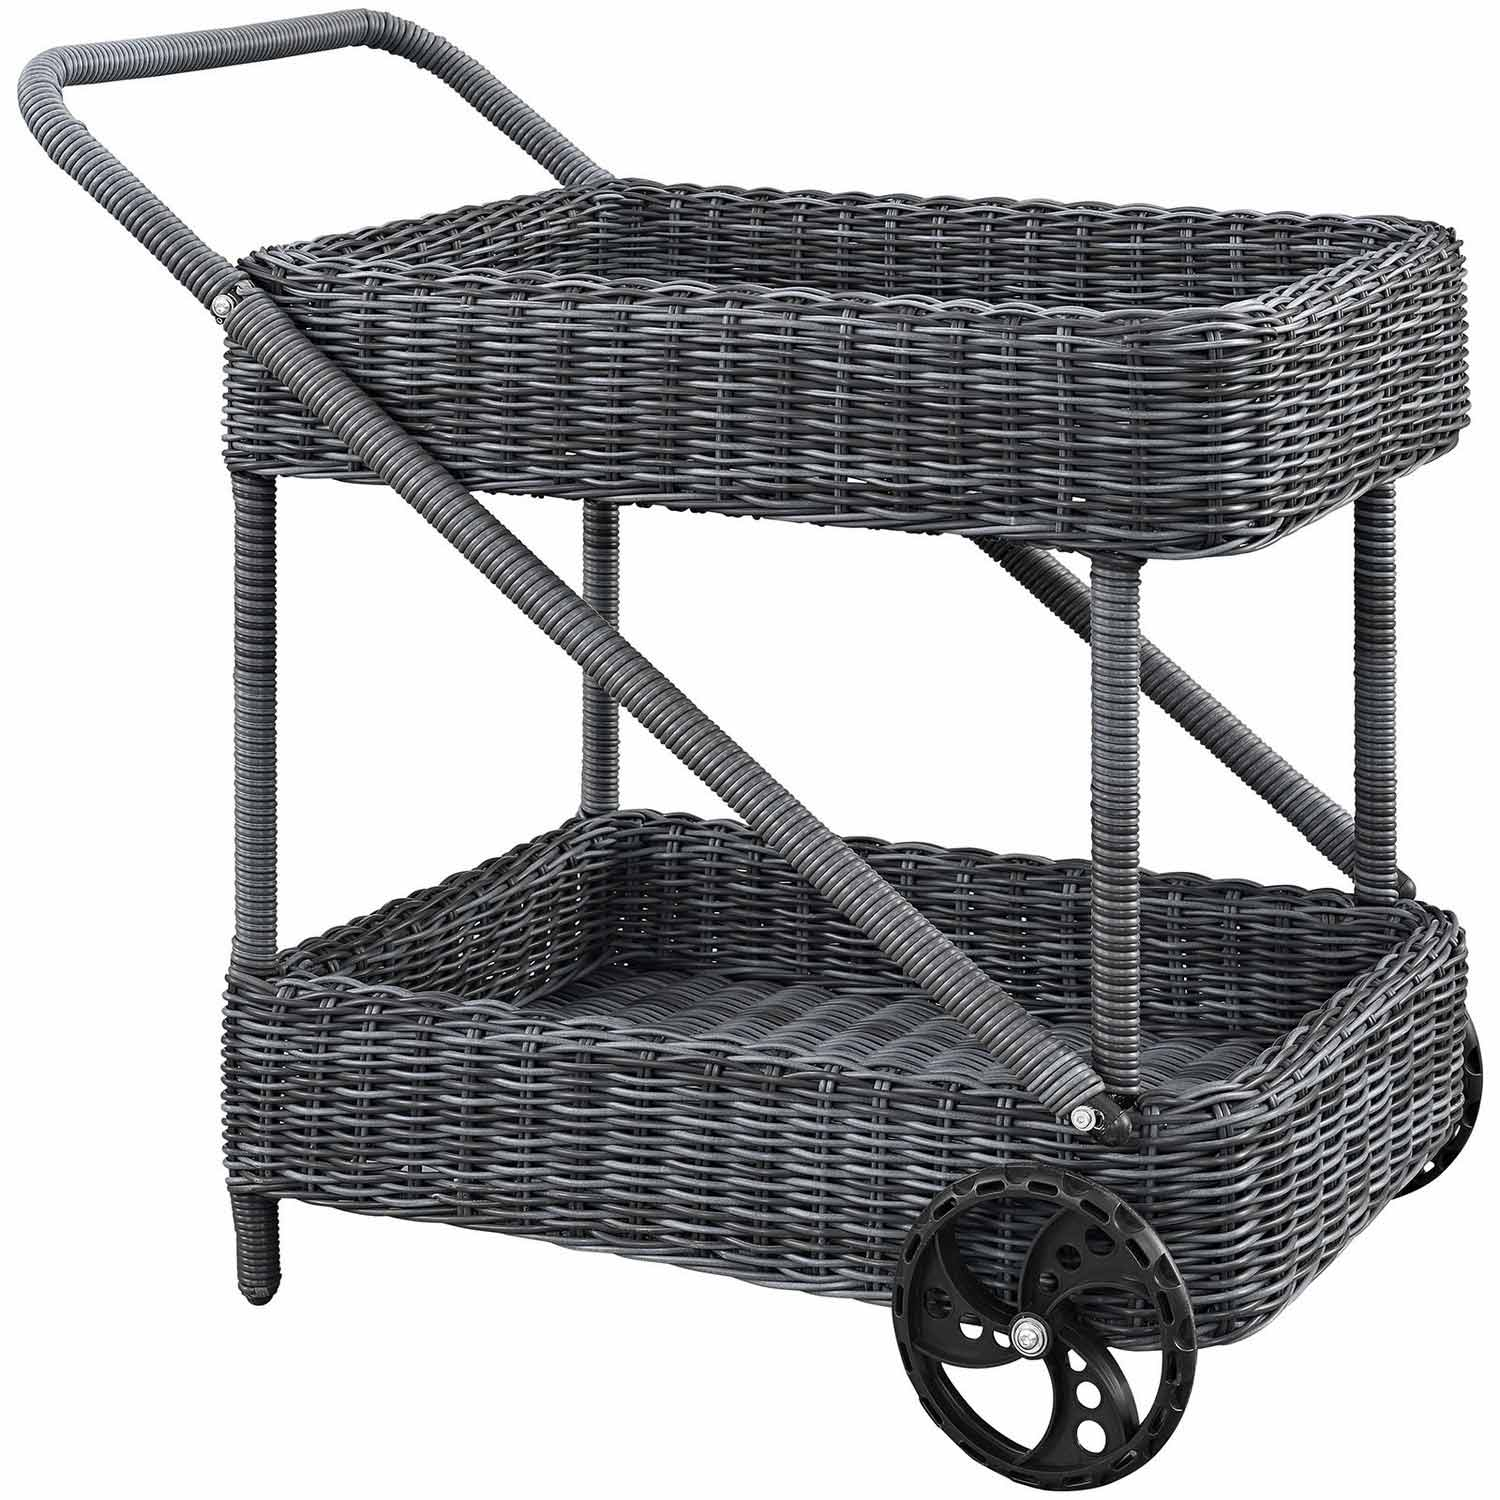 Modway Summon Outdoor Patio Beverage Cart - Gray